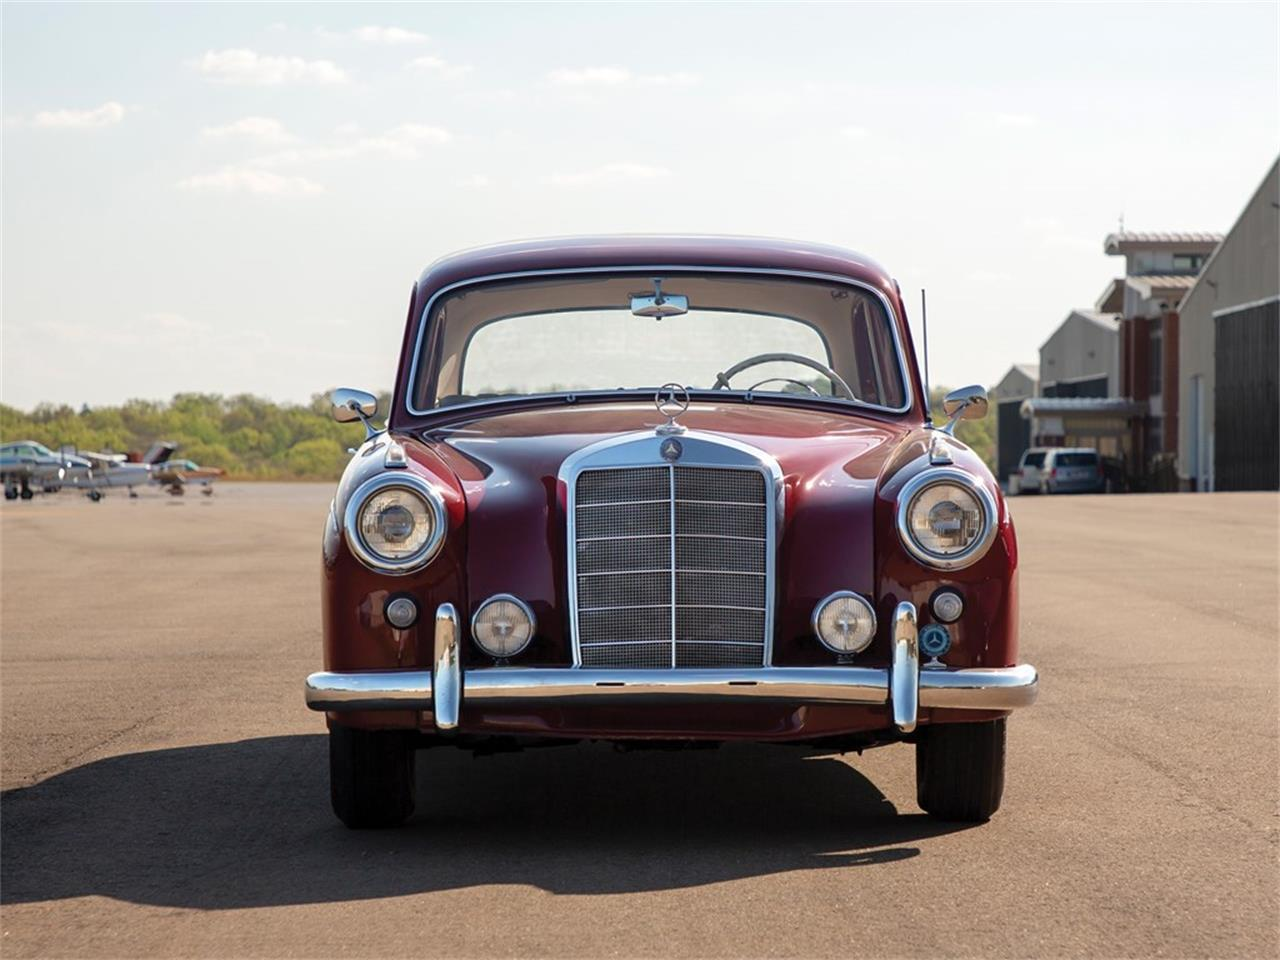 Large Picture of Classic '59 Mercedes-Benz 220SE located in Auburn Indiana Auction Vehicle Offered by RM Sotheby's - Q16N